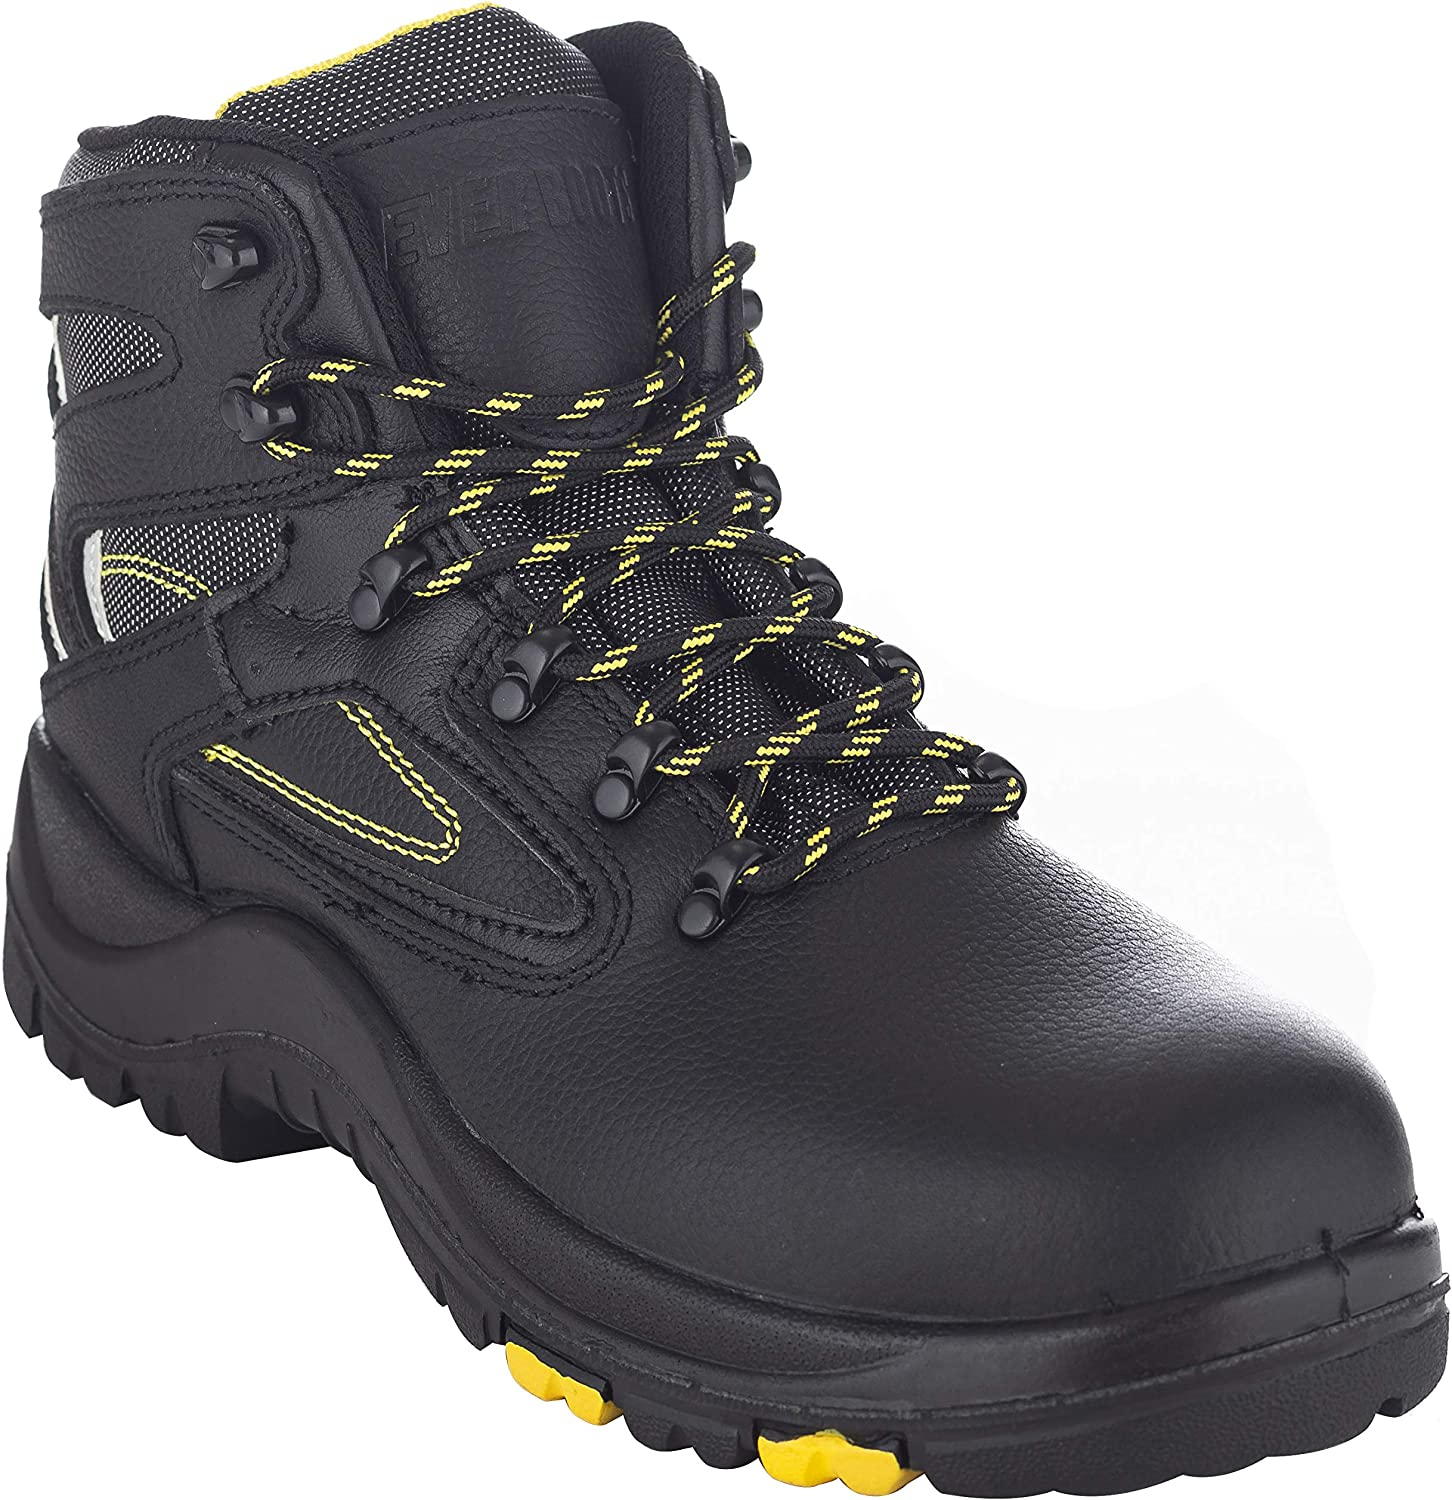 "EVER BOOTS ""Protector Men's Steel Toe Industrial Work Boots Safety Shoes Electrical Hazard Protection"